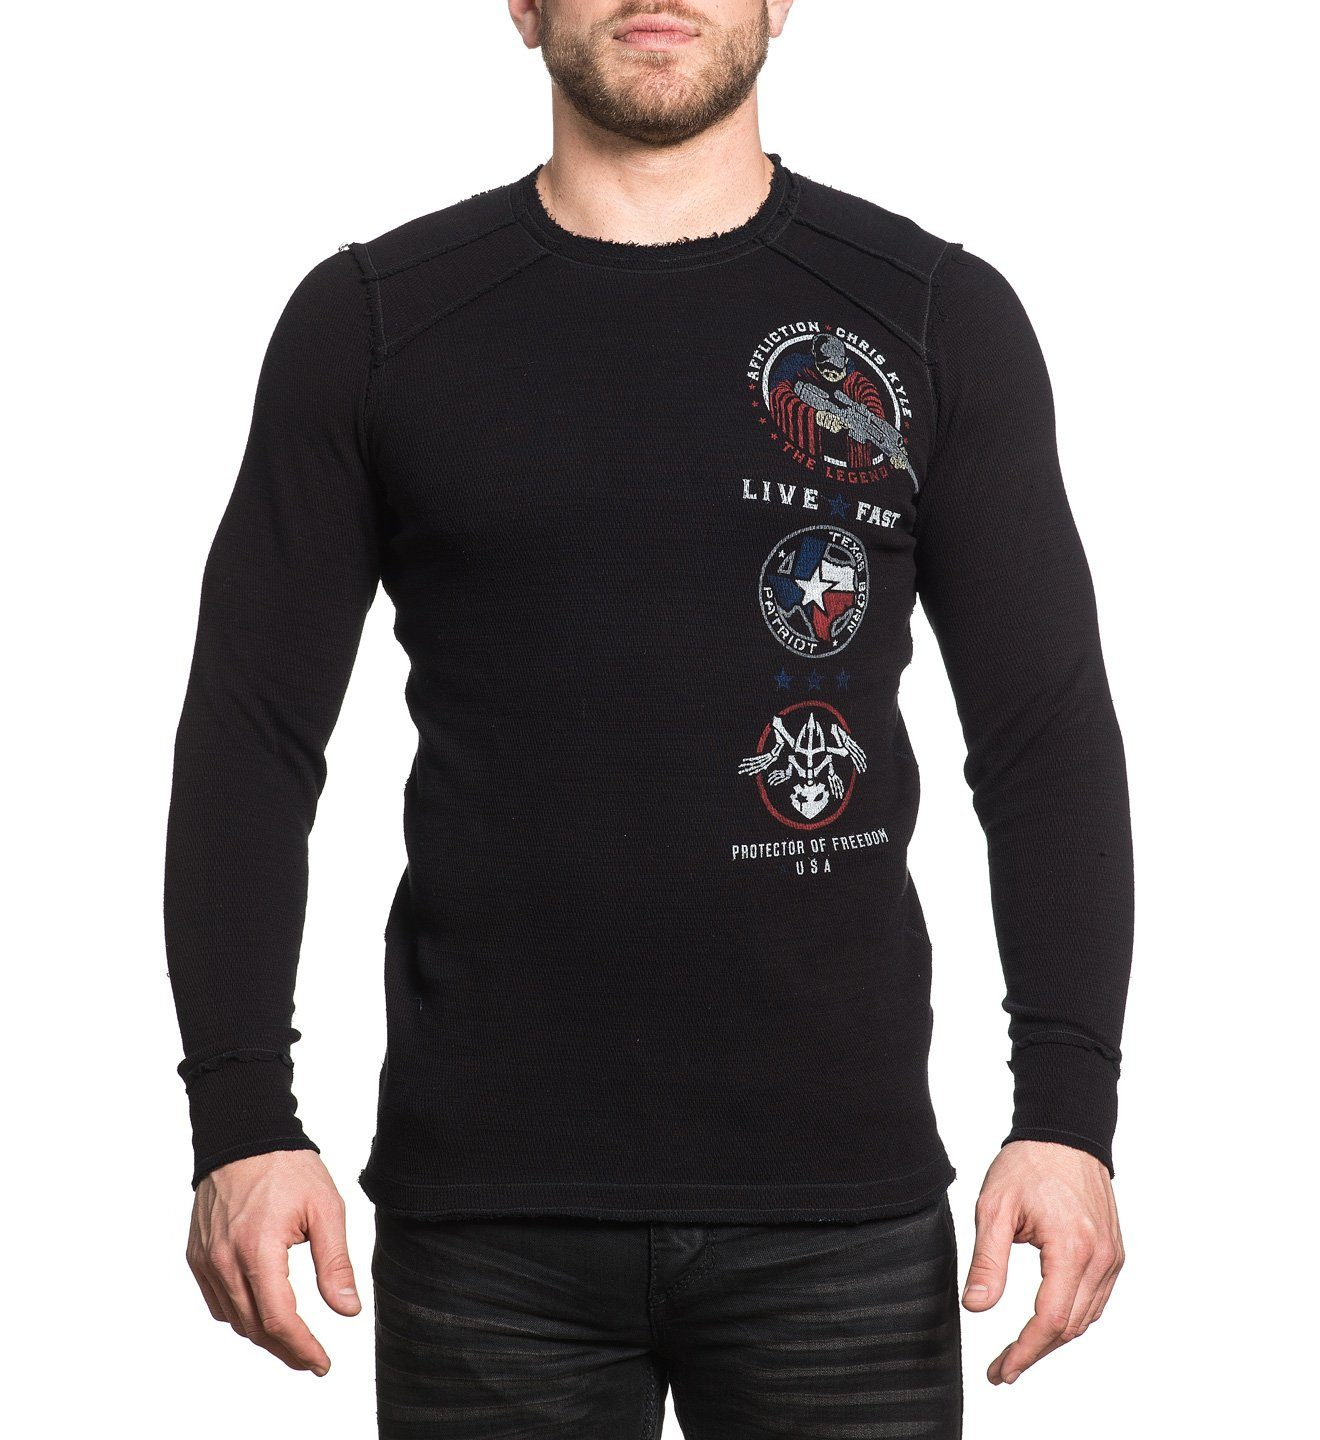 Mens Long Sleeve Tees - Ck Veteran